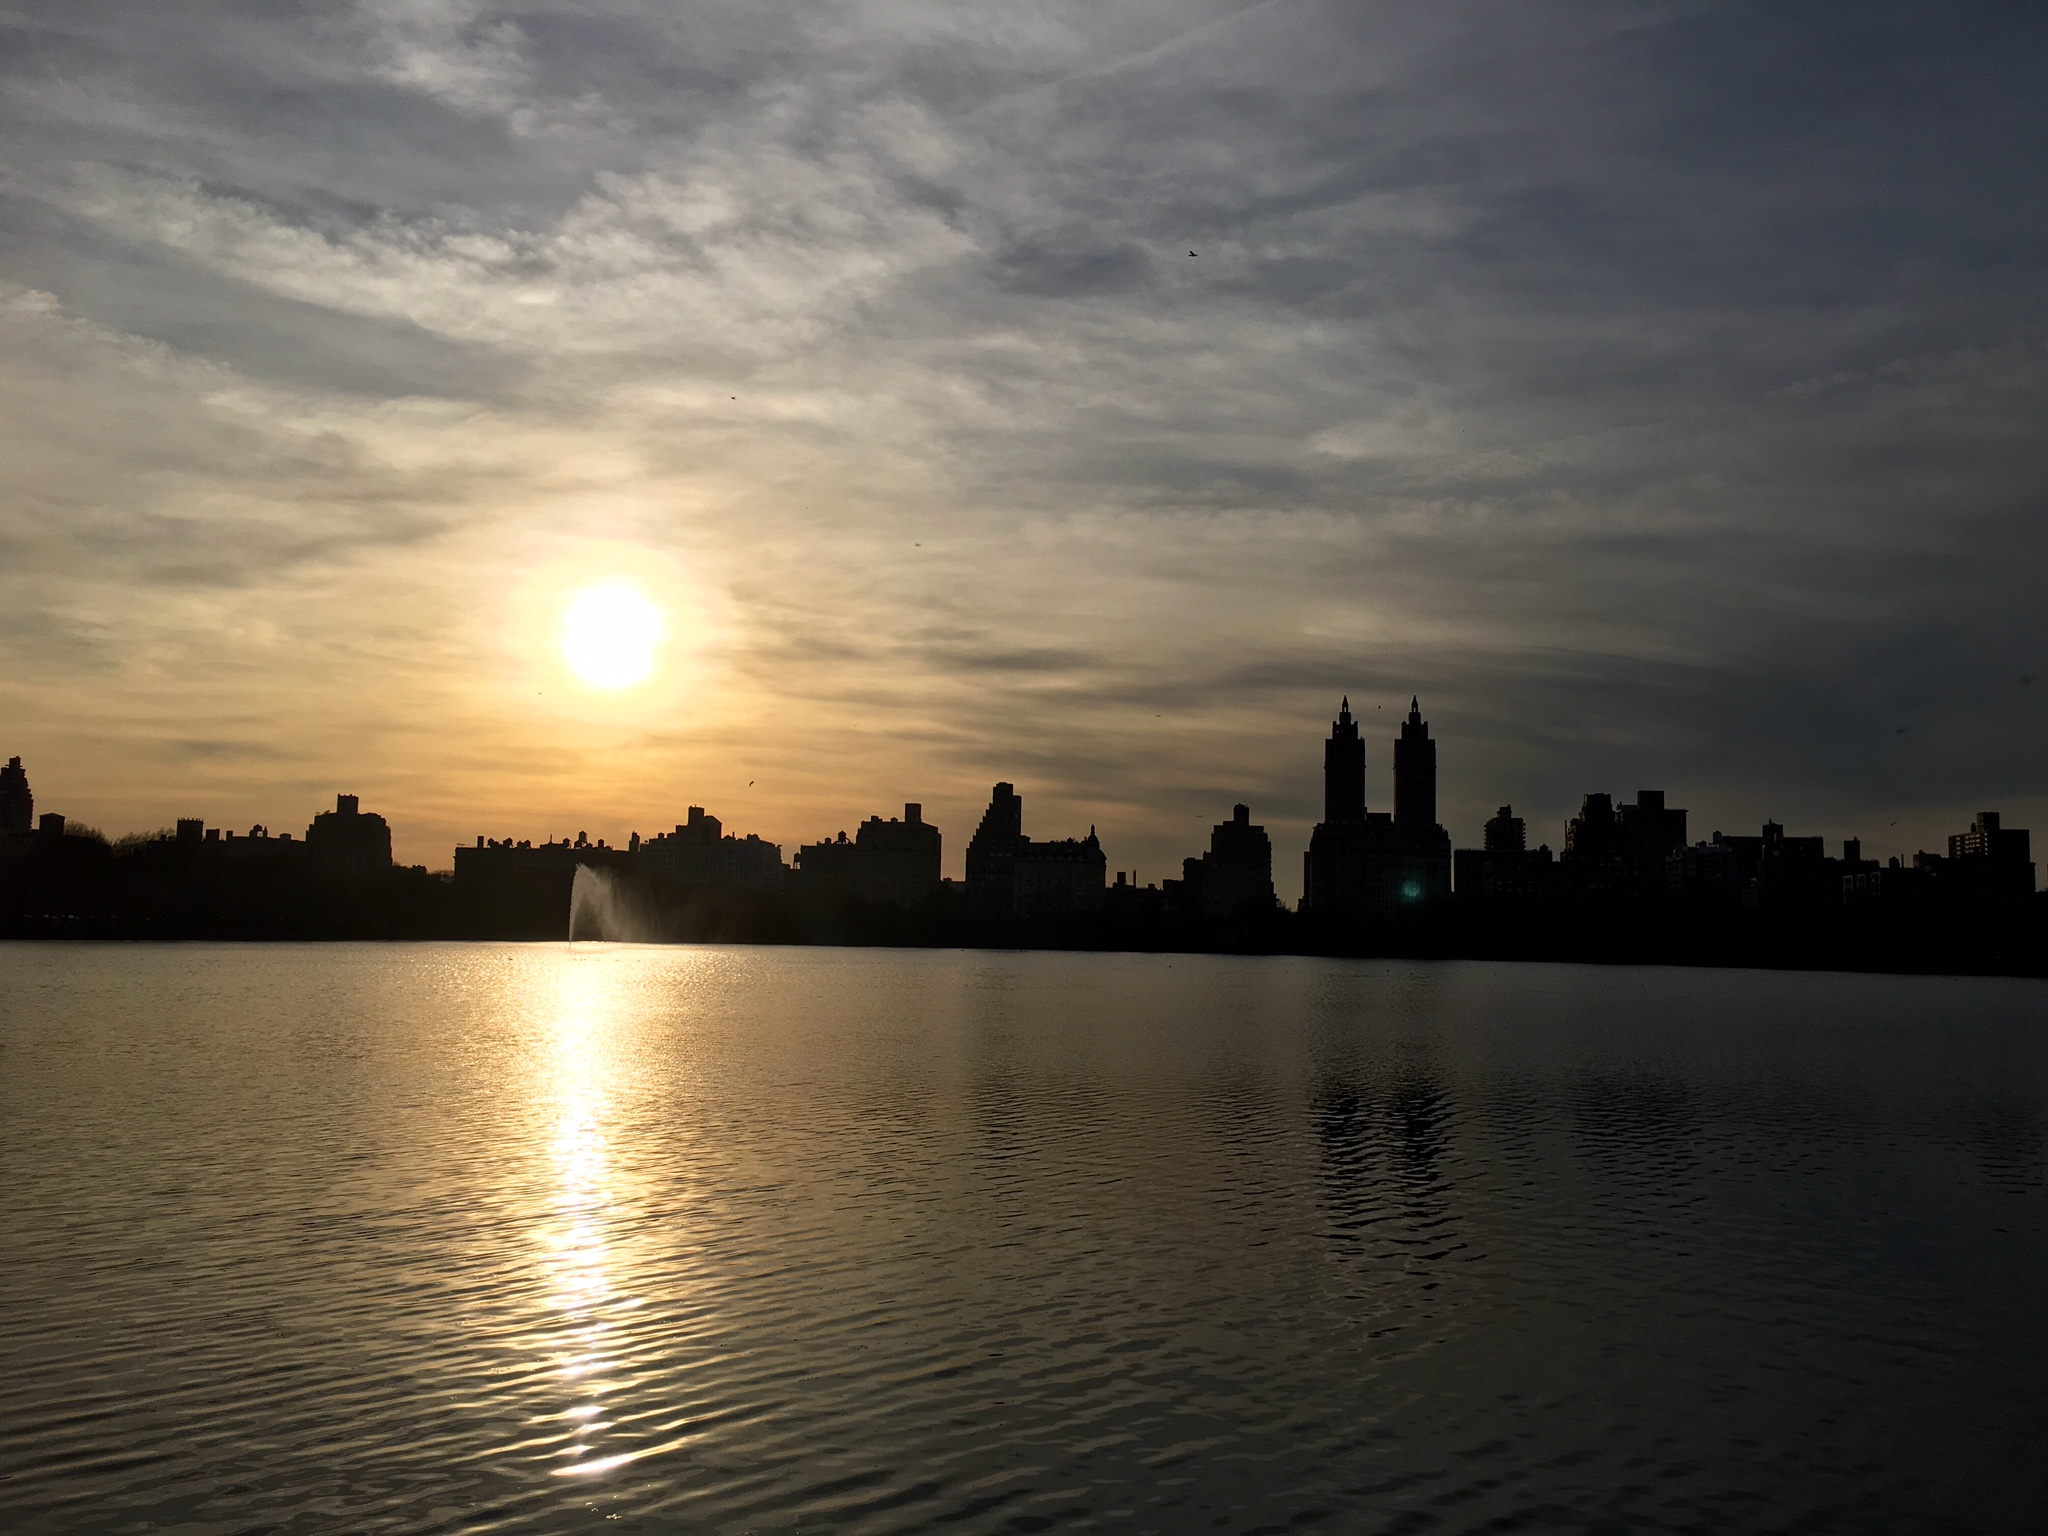 This is the Central Park Reservoir in Manhattan. I never felt unsafe walking here at pretty much any time of day.